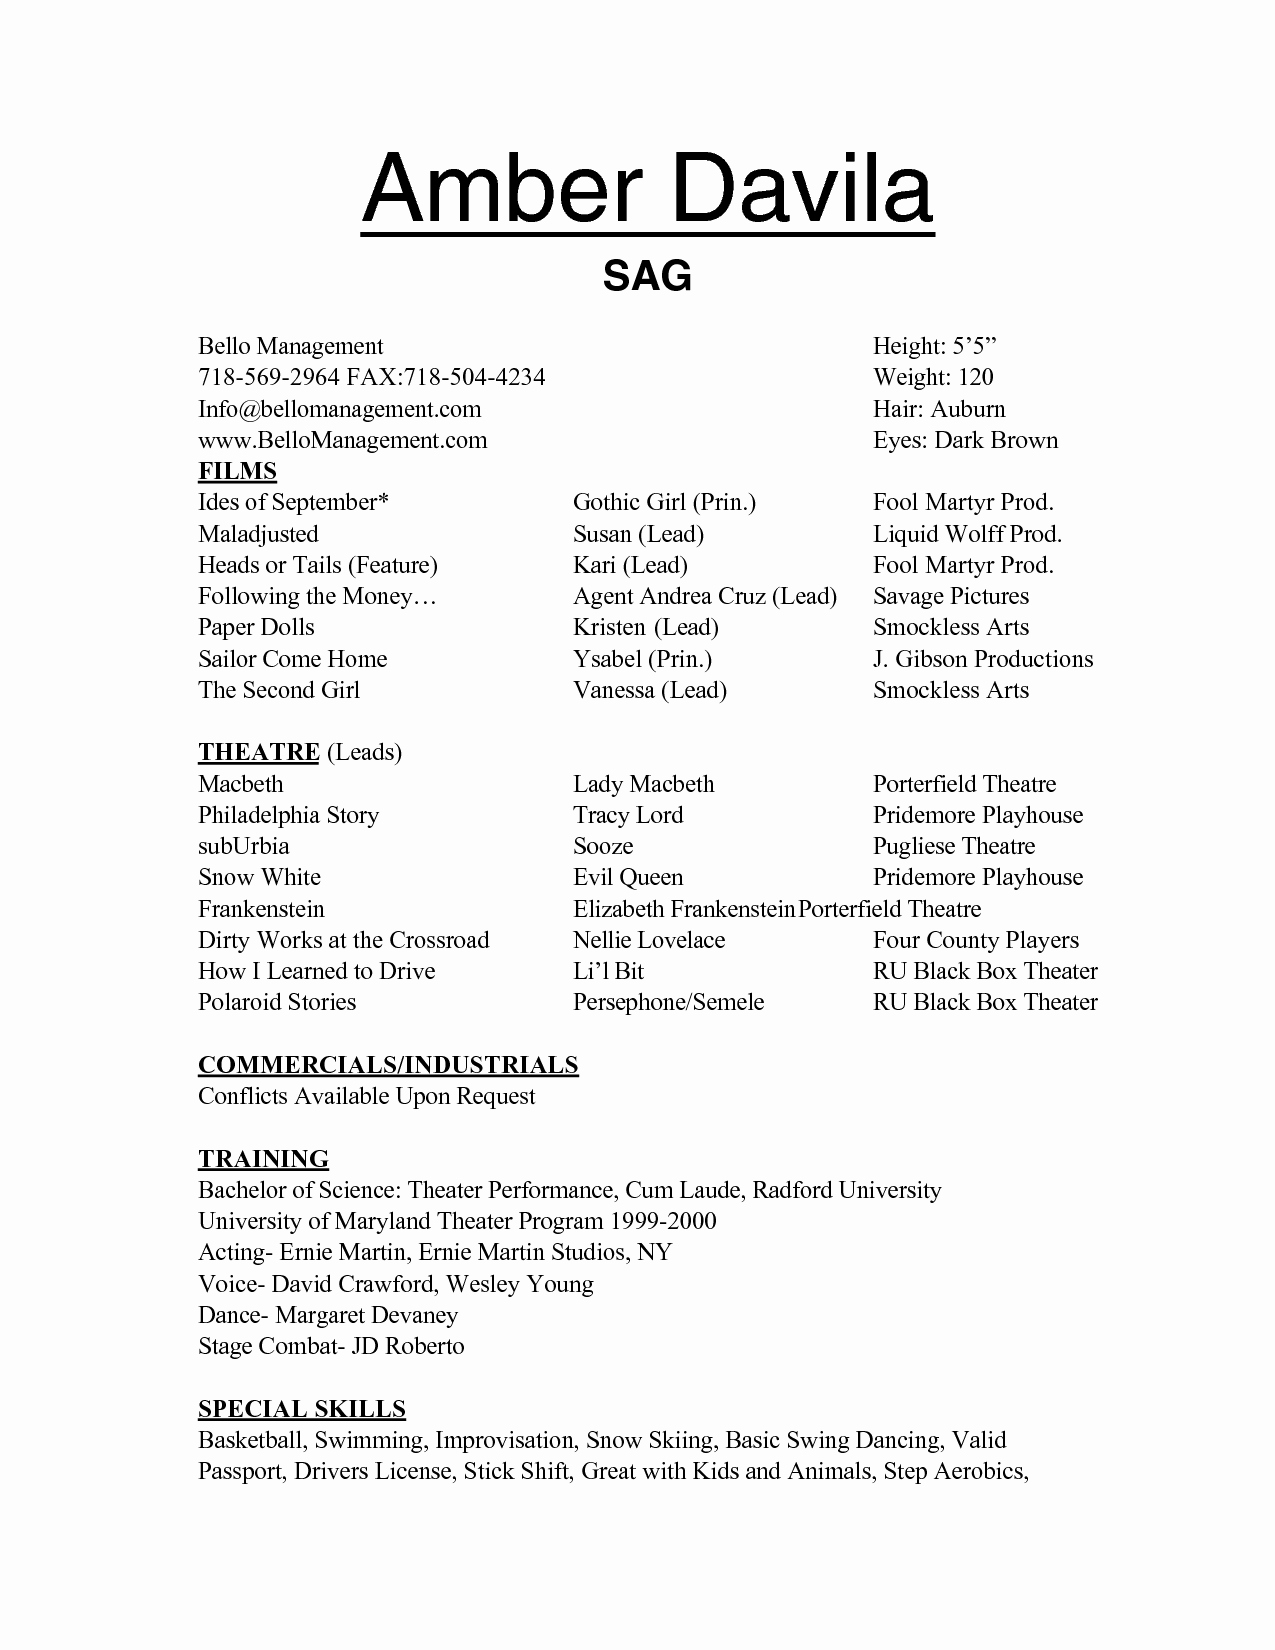 Free Acting Resume Templates Samplebusinessresume